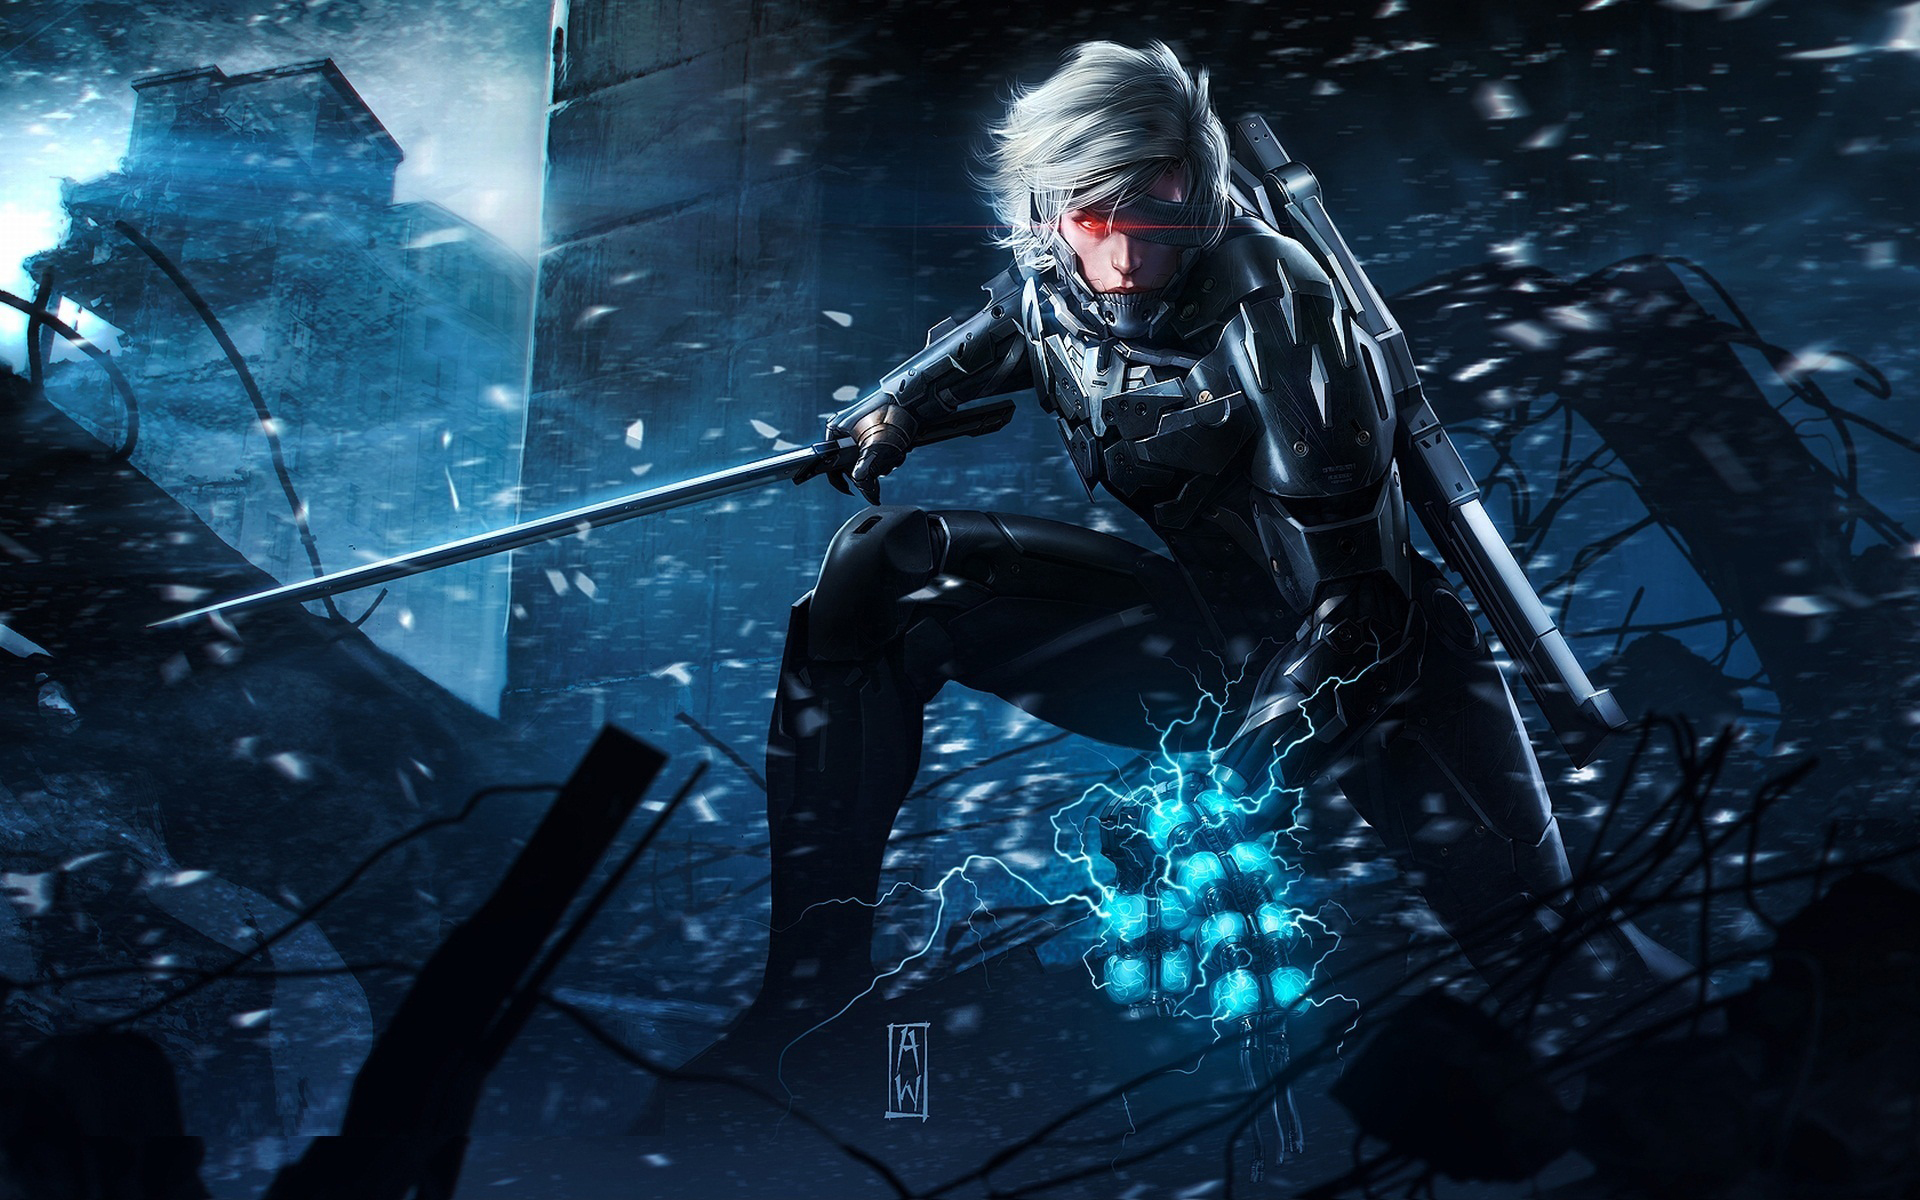 Metal Gear Rising Wallpaper Games